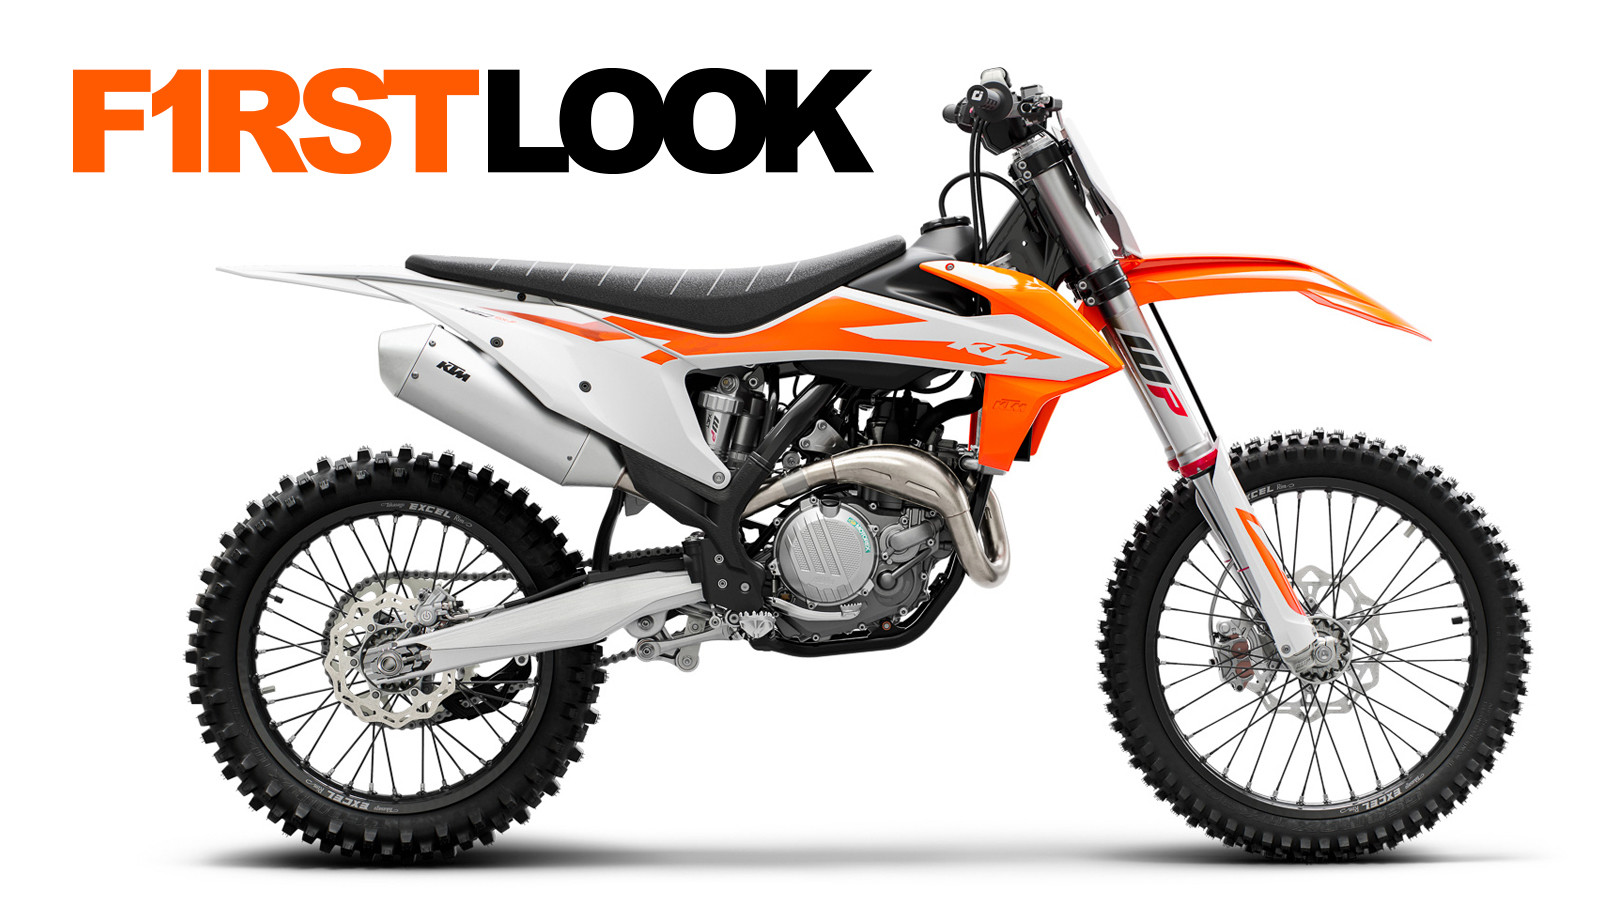 First Look: 2020 KTM Motocross and Cross-Country Bikes